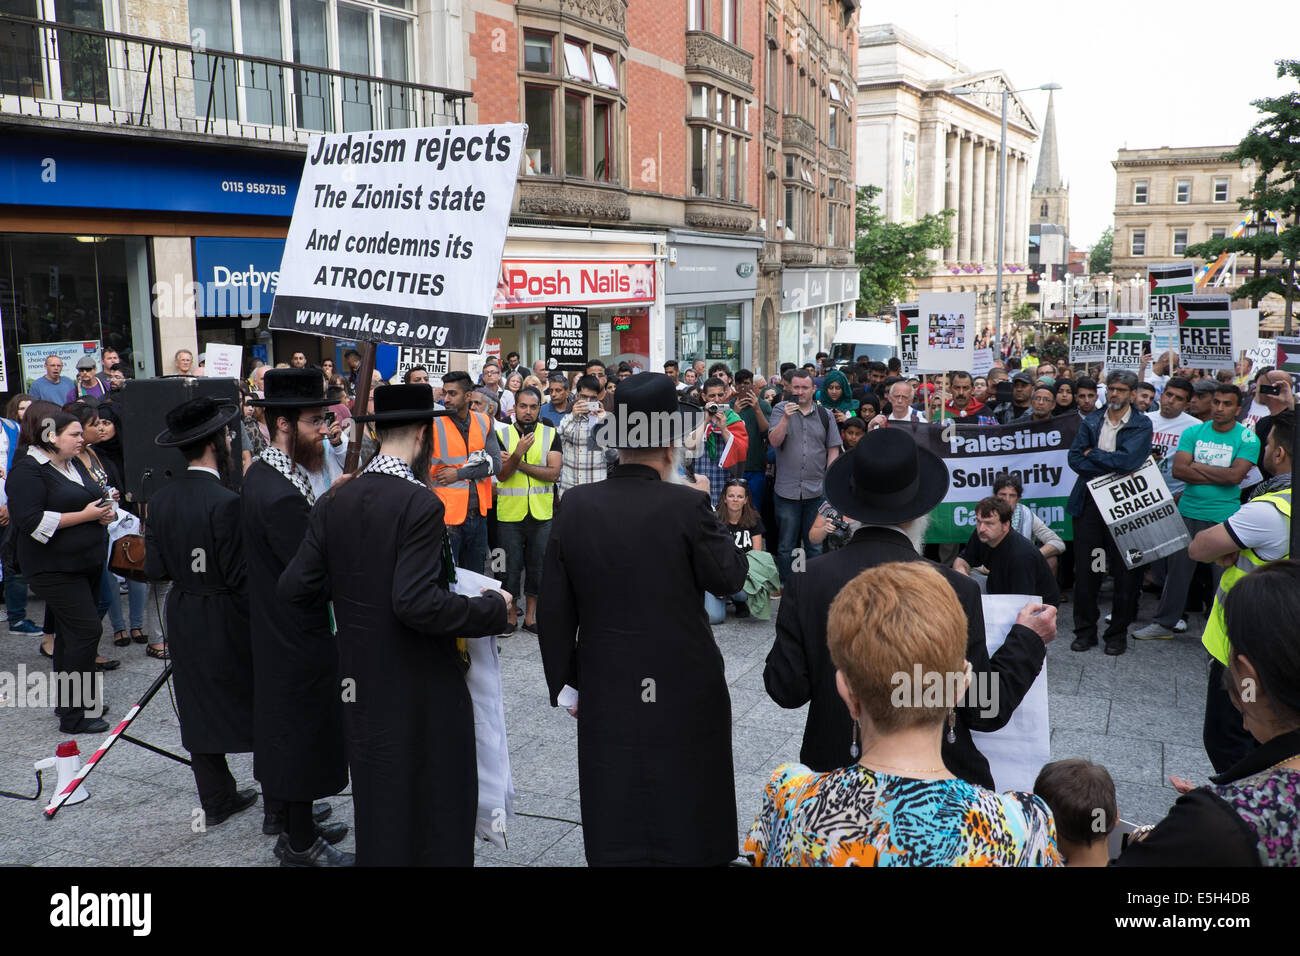 Nottingham, UK. 31st July, 2014. Palestine solidarity campaign march from the BBC media center on London road to - Stock Image